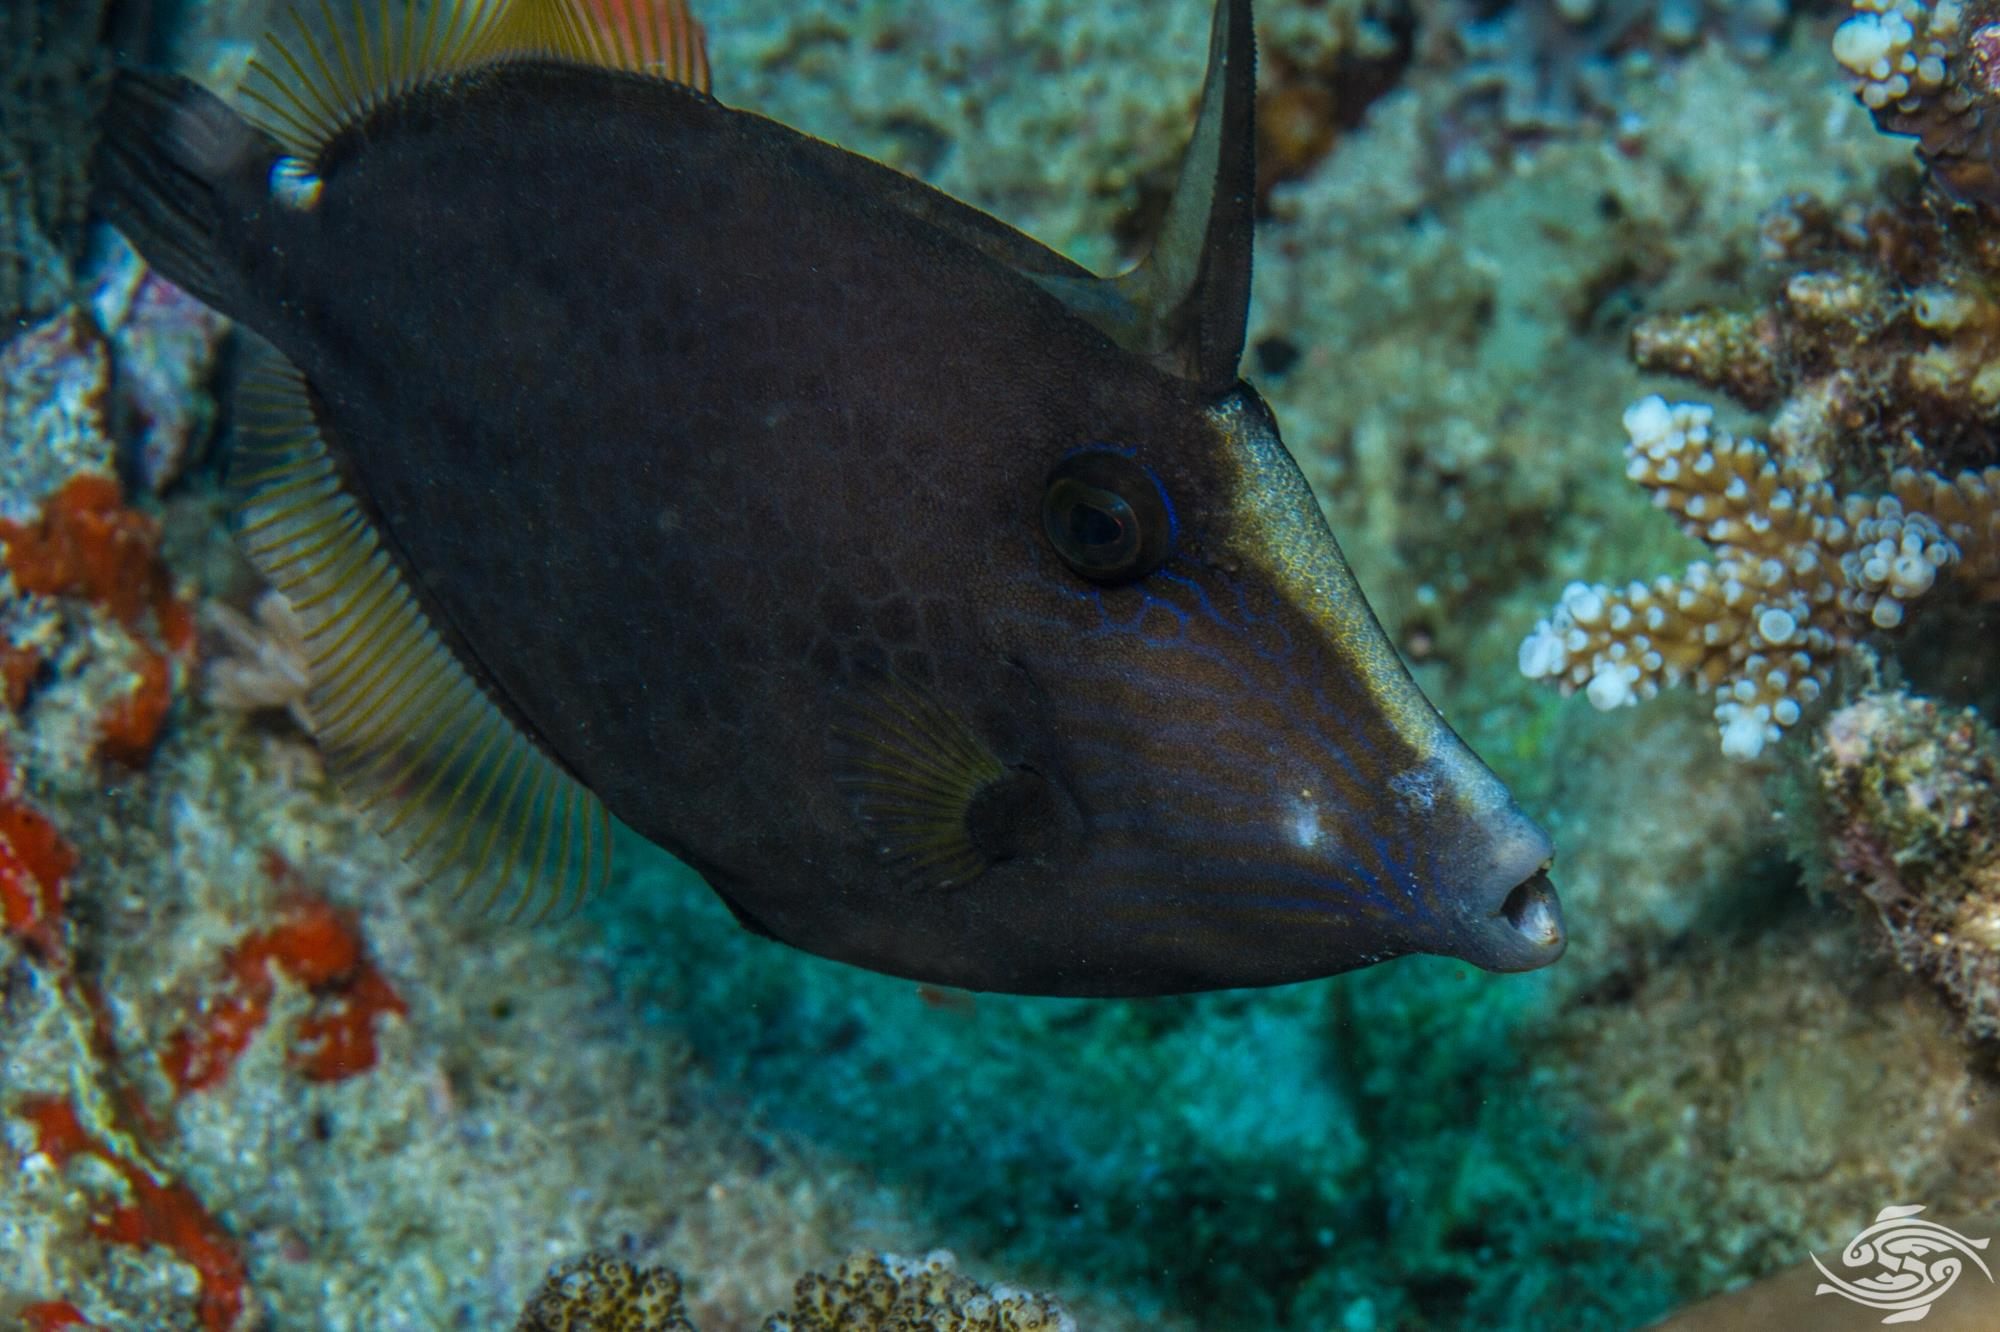 Honeycomb Filefish (Cantherhines pardalis) is also known as the Wirenet Filefish and the Honeycomb Leather- jacket